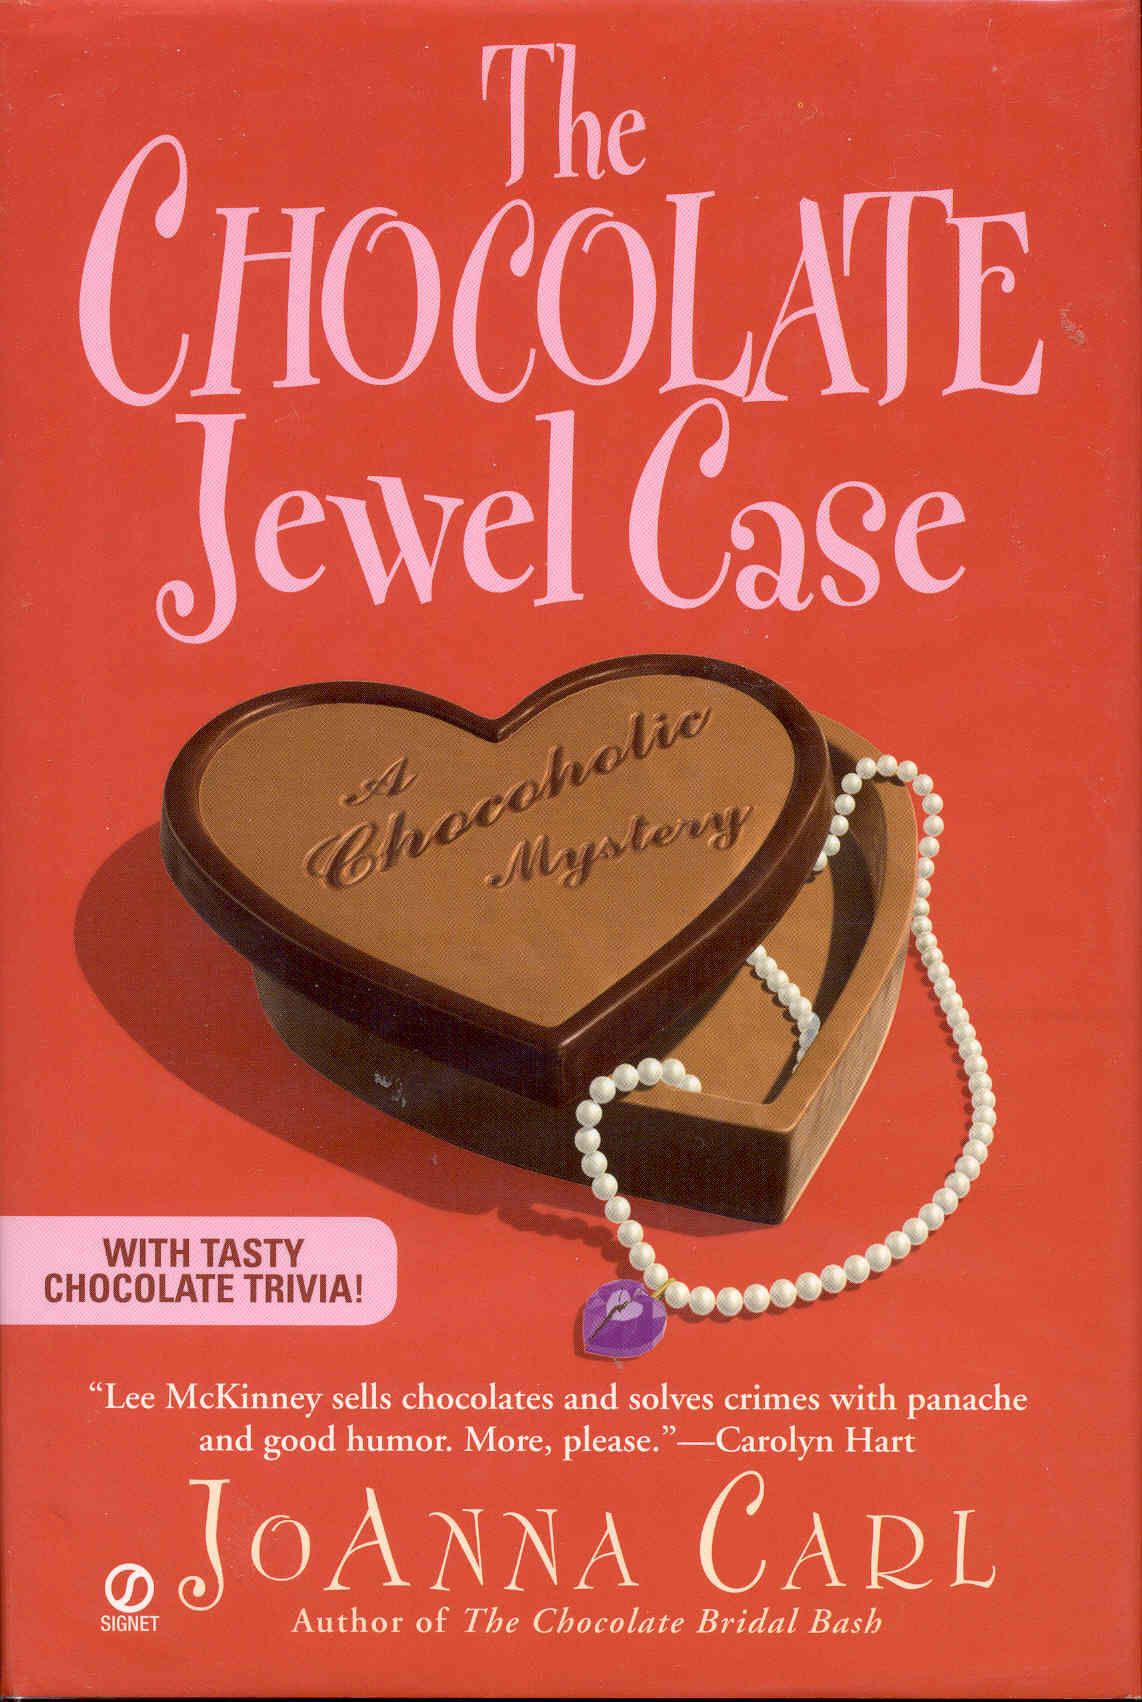 The Chocolate Jewel Case: A Chocoholic Mystery